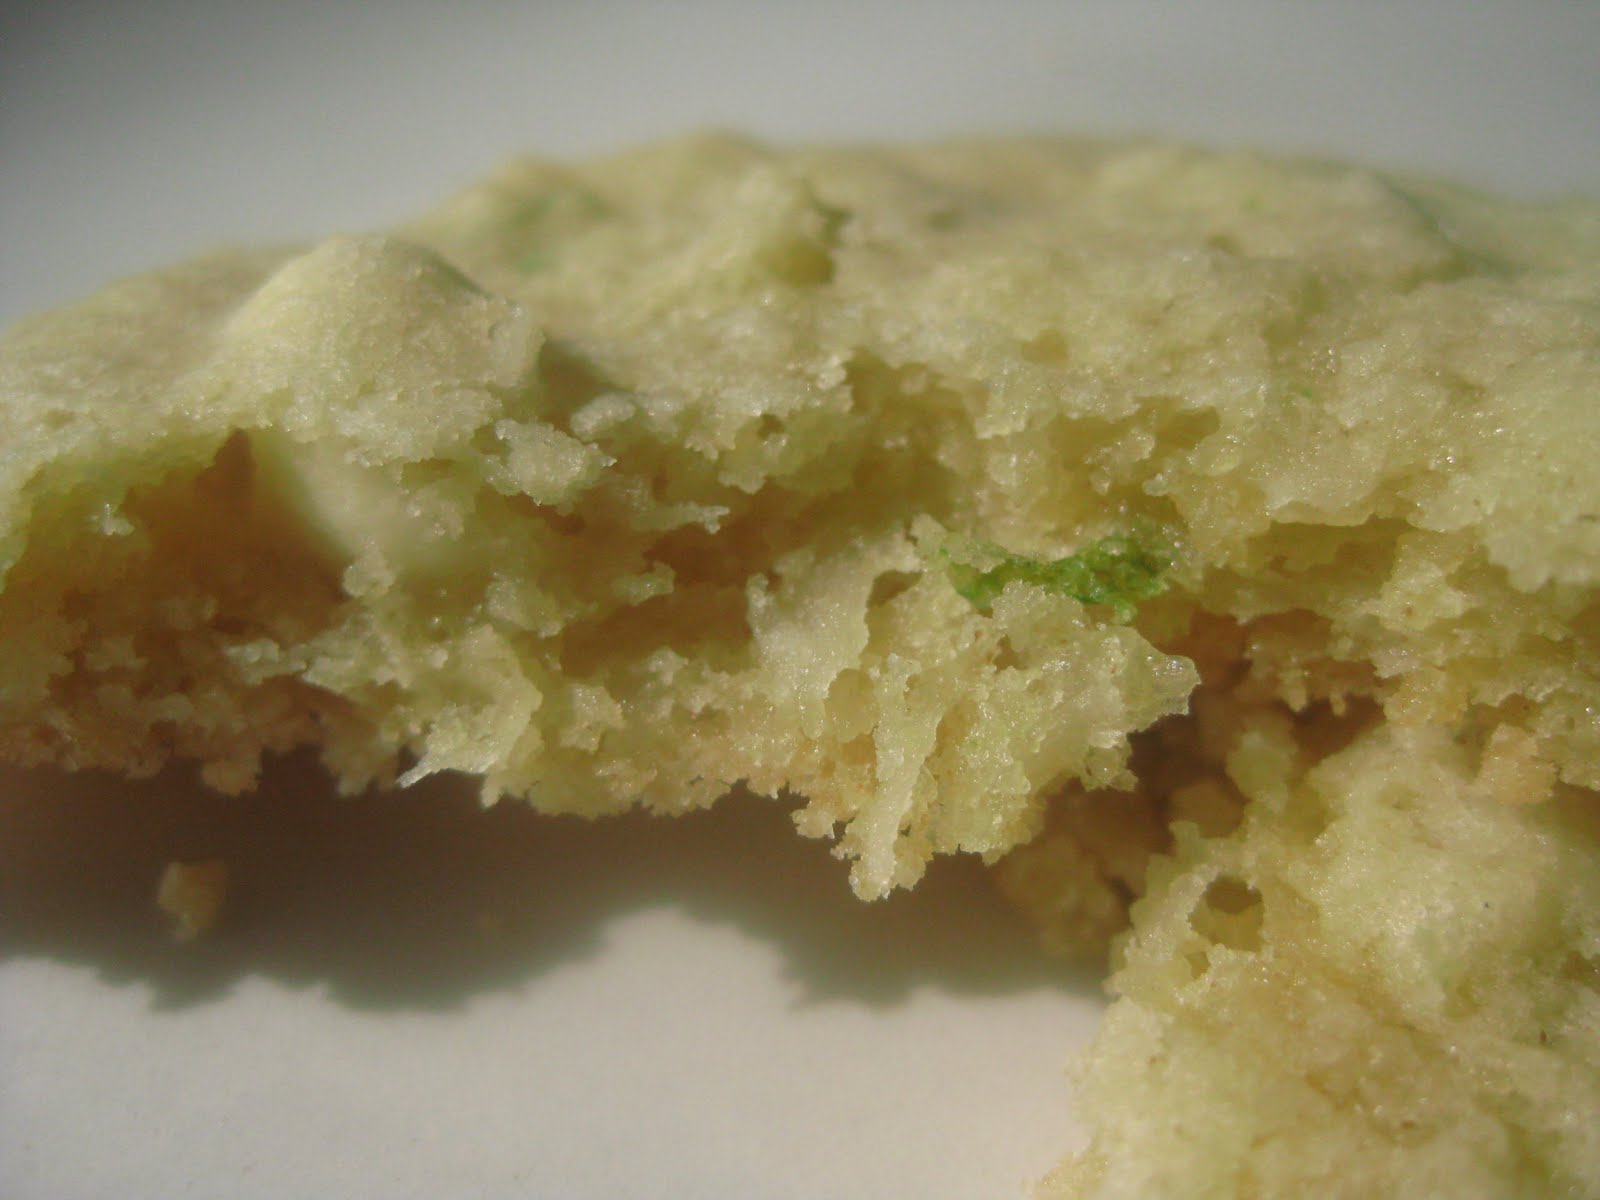 Andrea The Kitchen Witch: Key Lime cookies with white chocolate